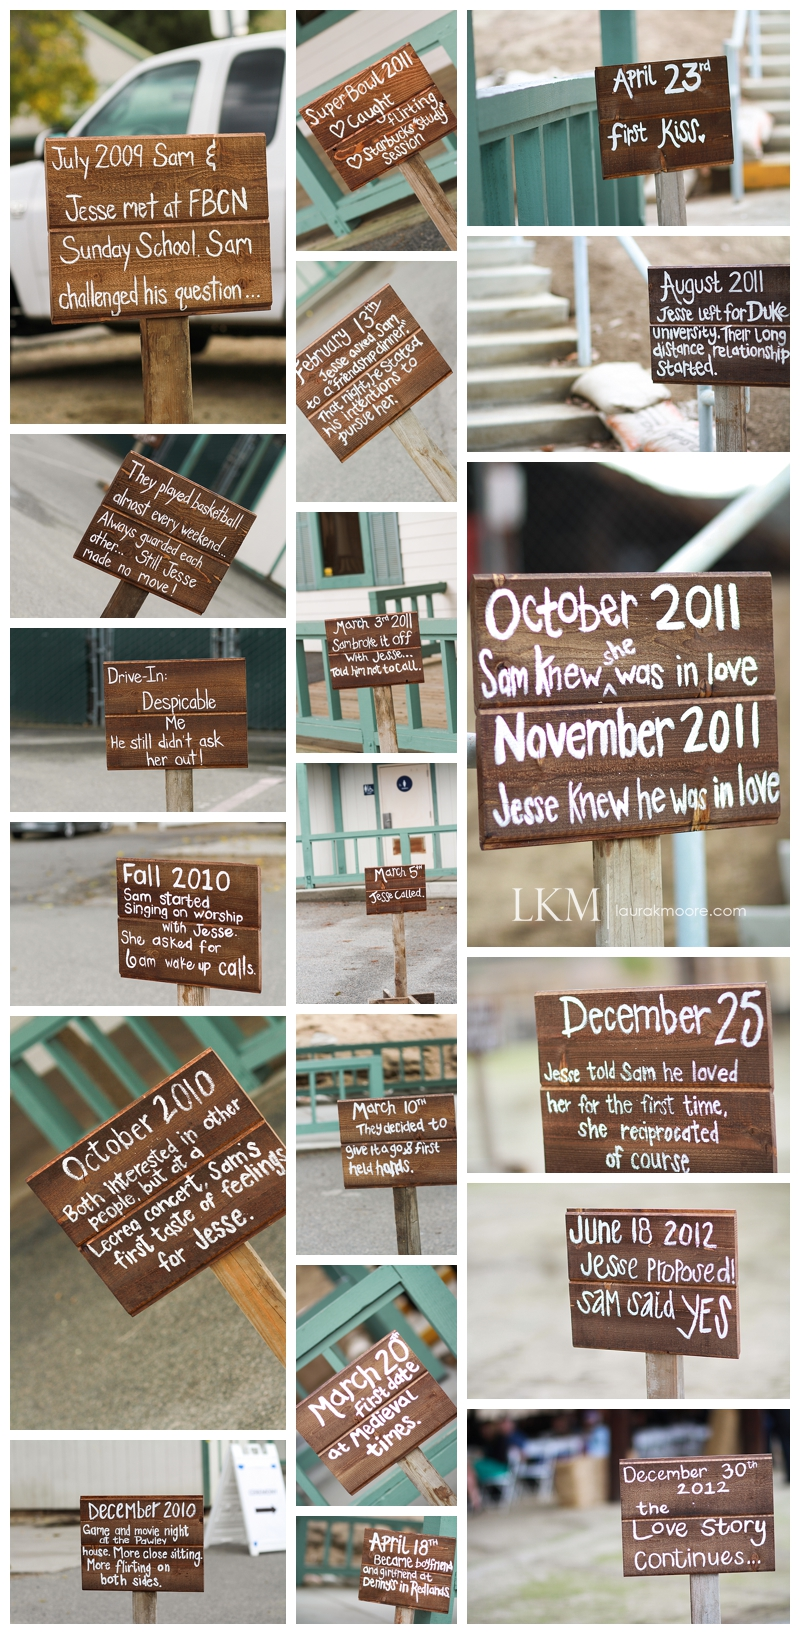 Norco-Southern-California-Wedding-Photographer-Country-Chic-Theme-Laura-K-Moore-_0055